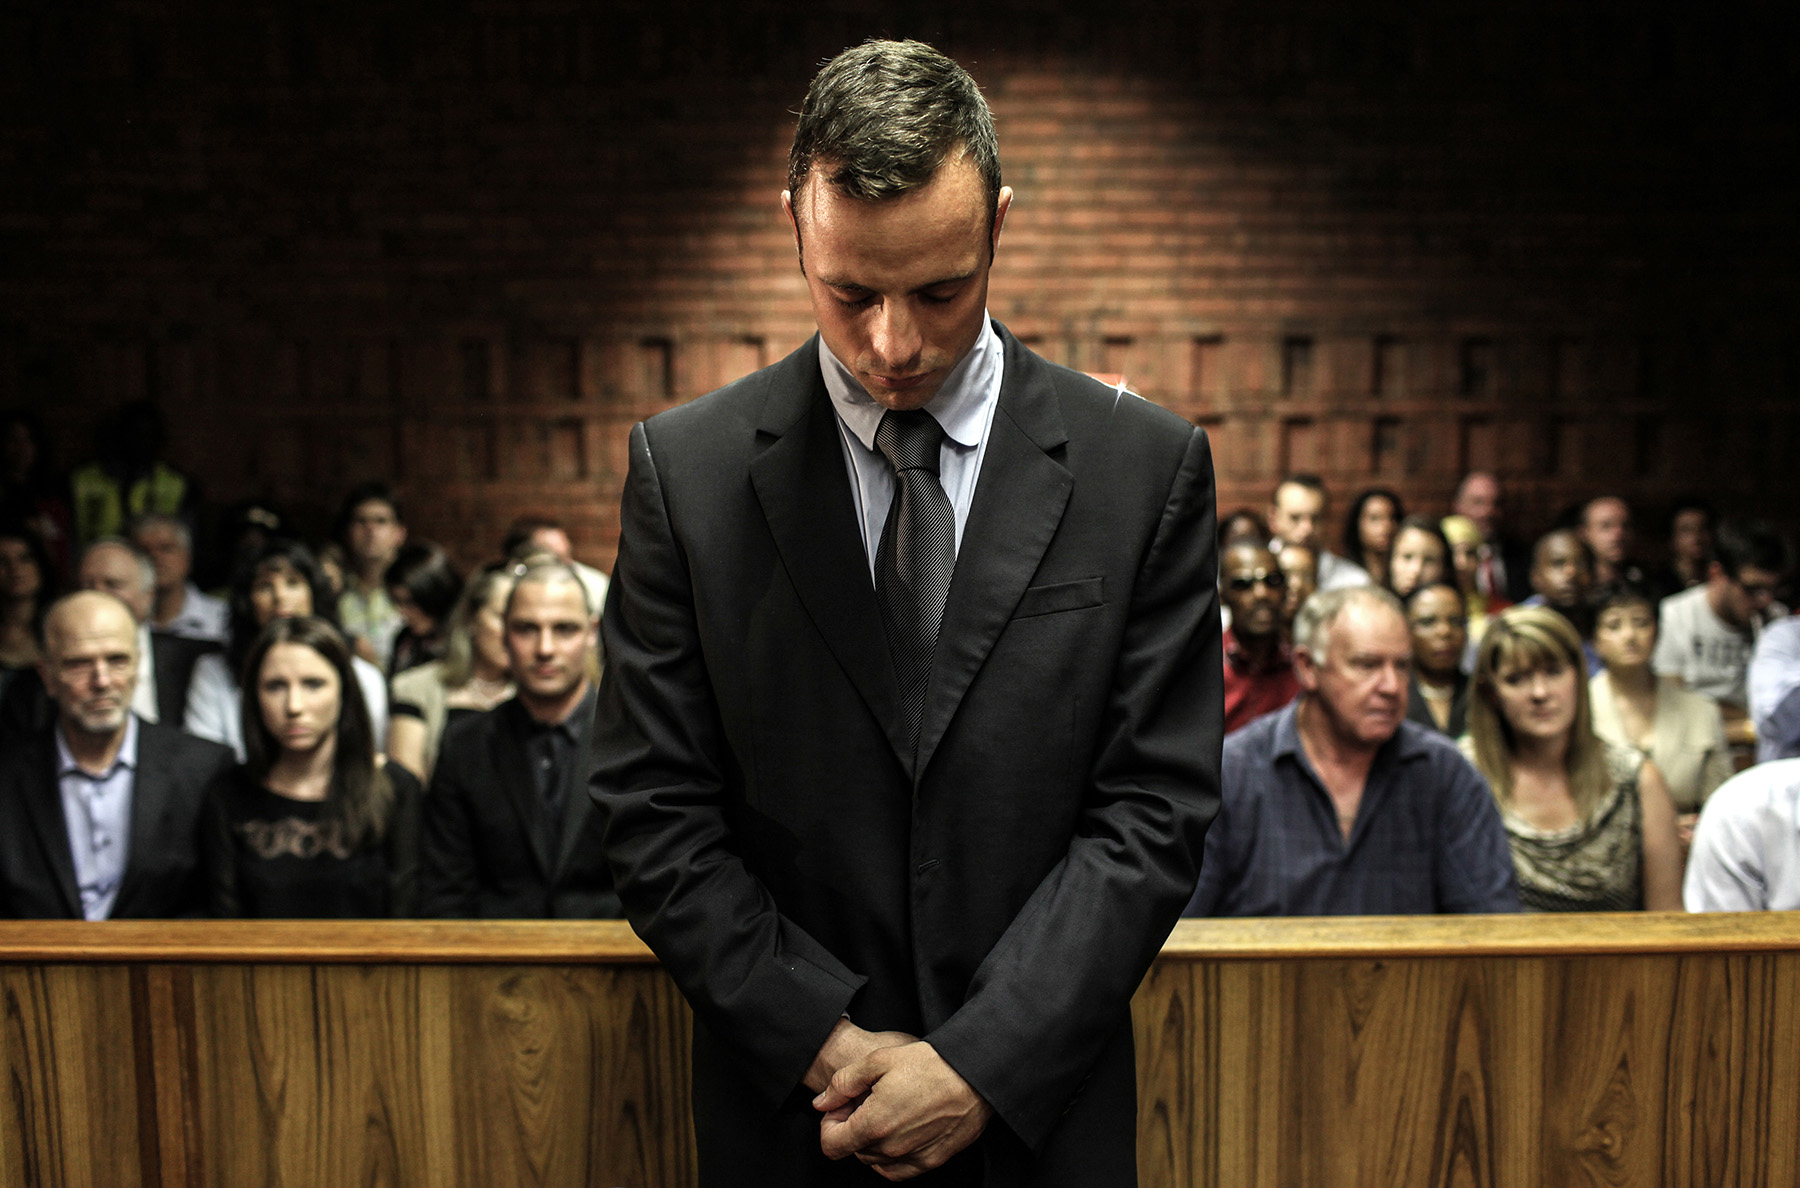 Oscar Pistorius case. South Africa. 2013.